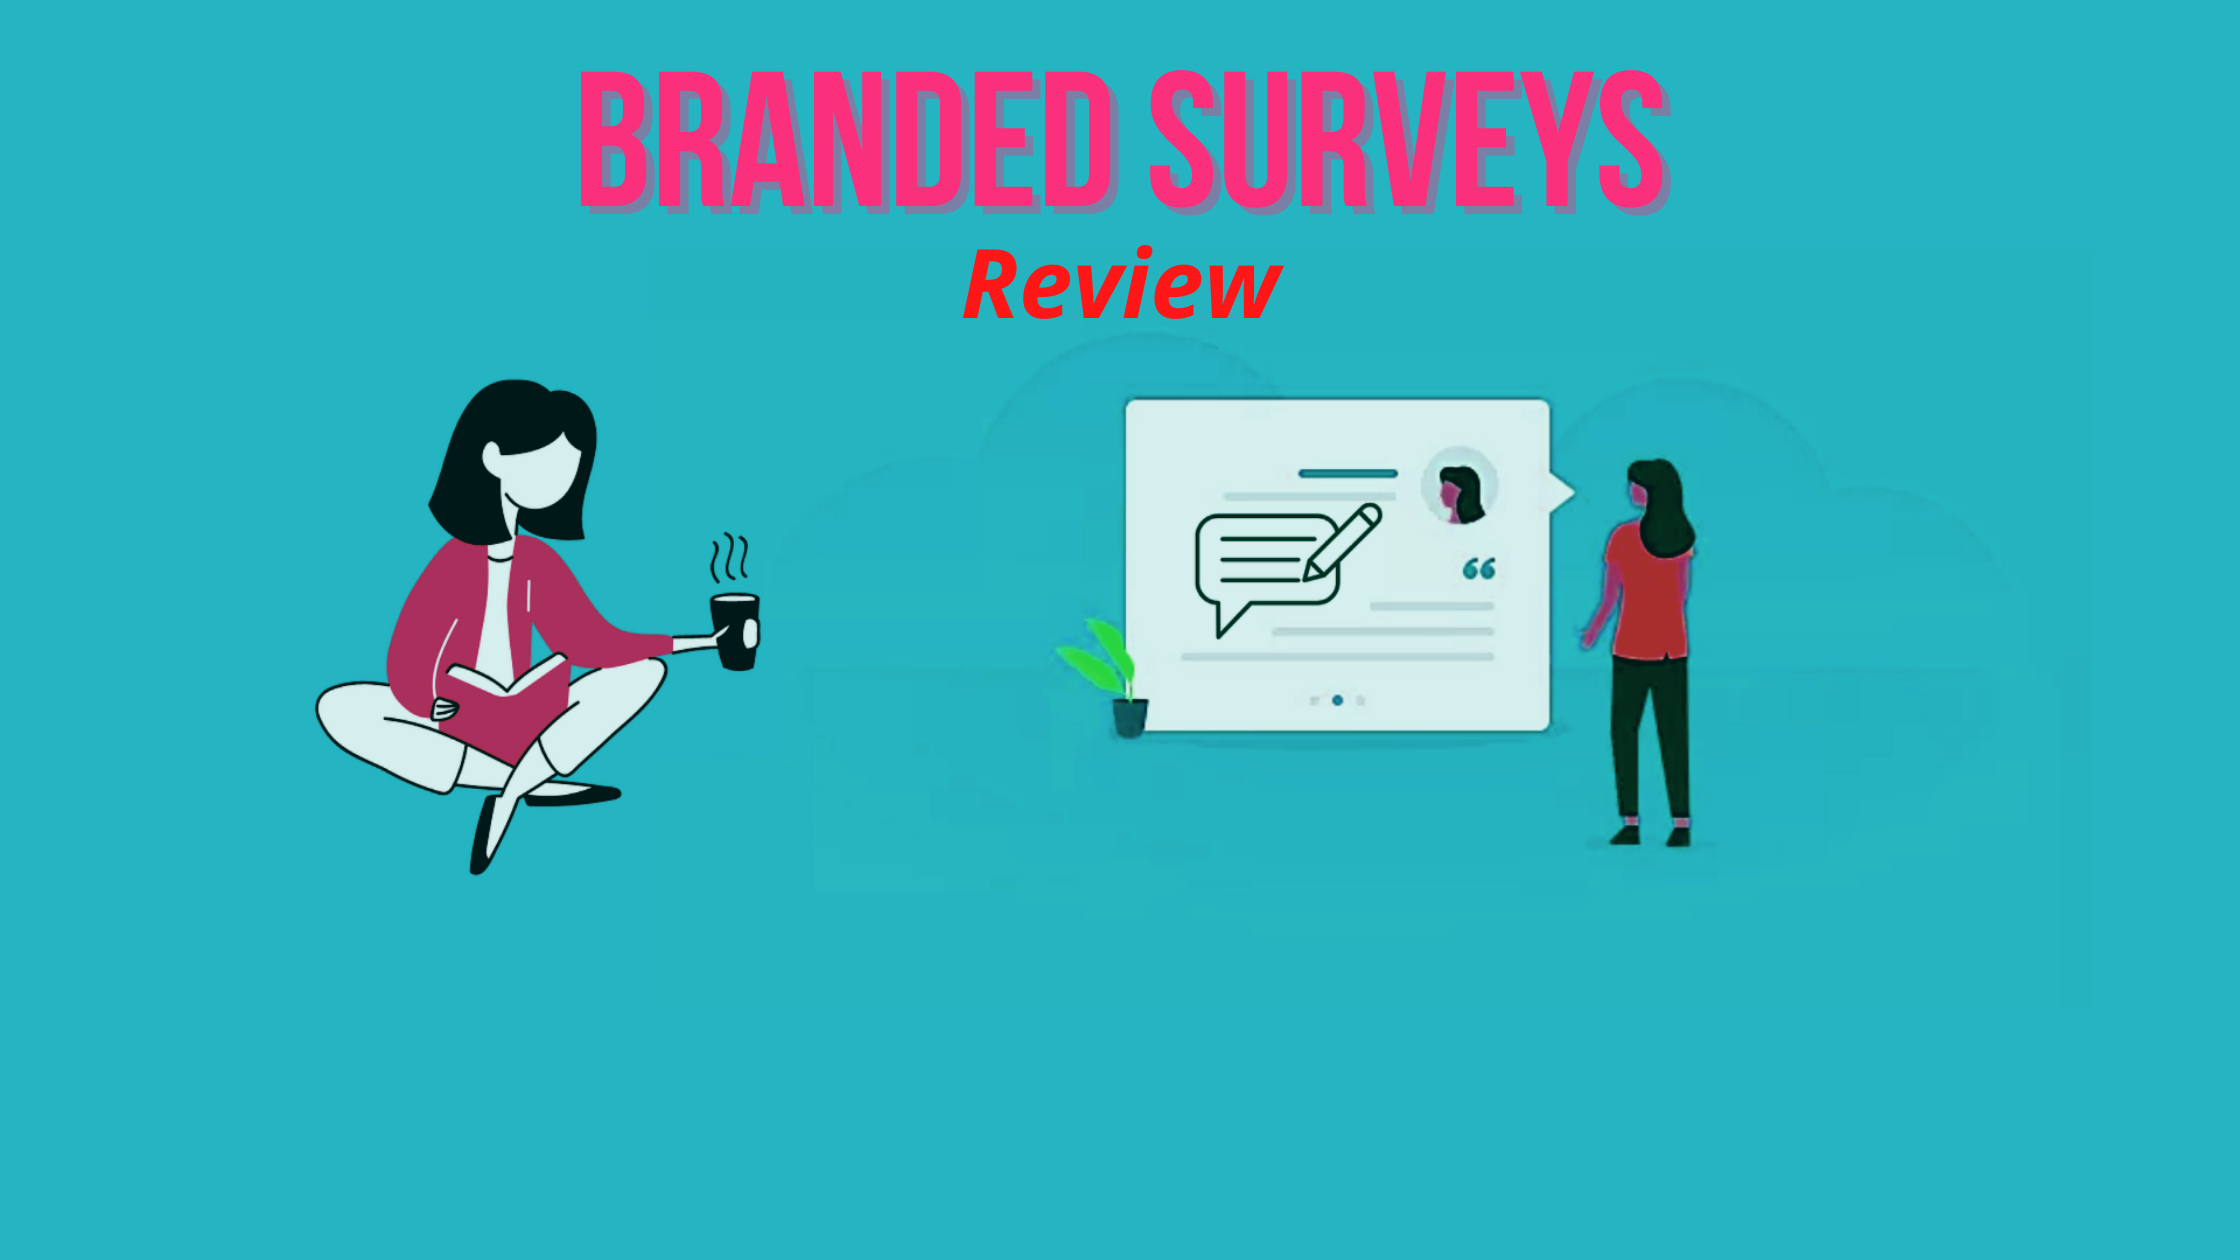 Is Branded Surveys a scam